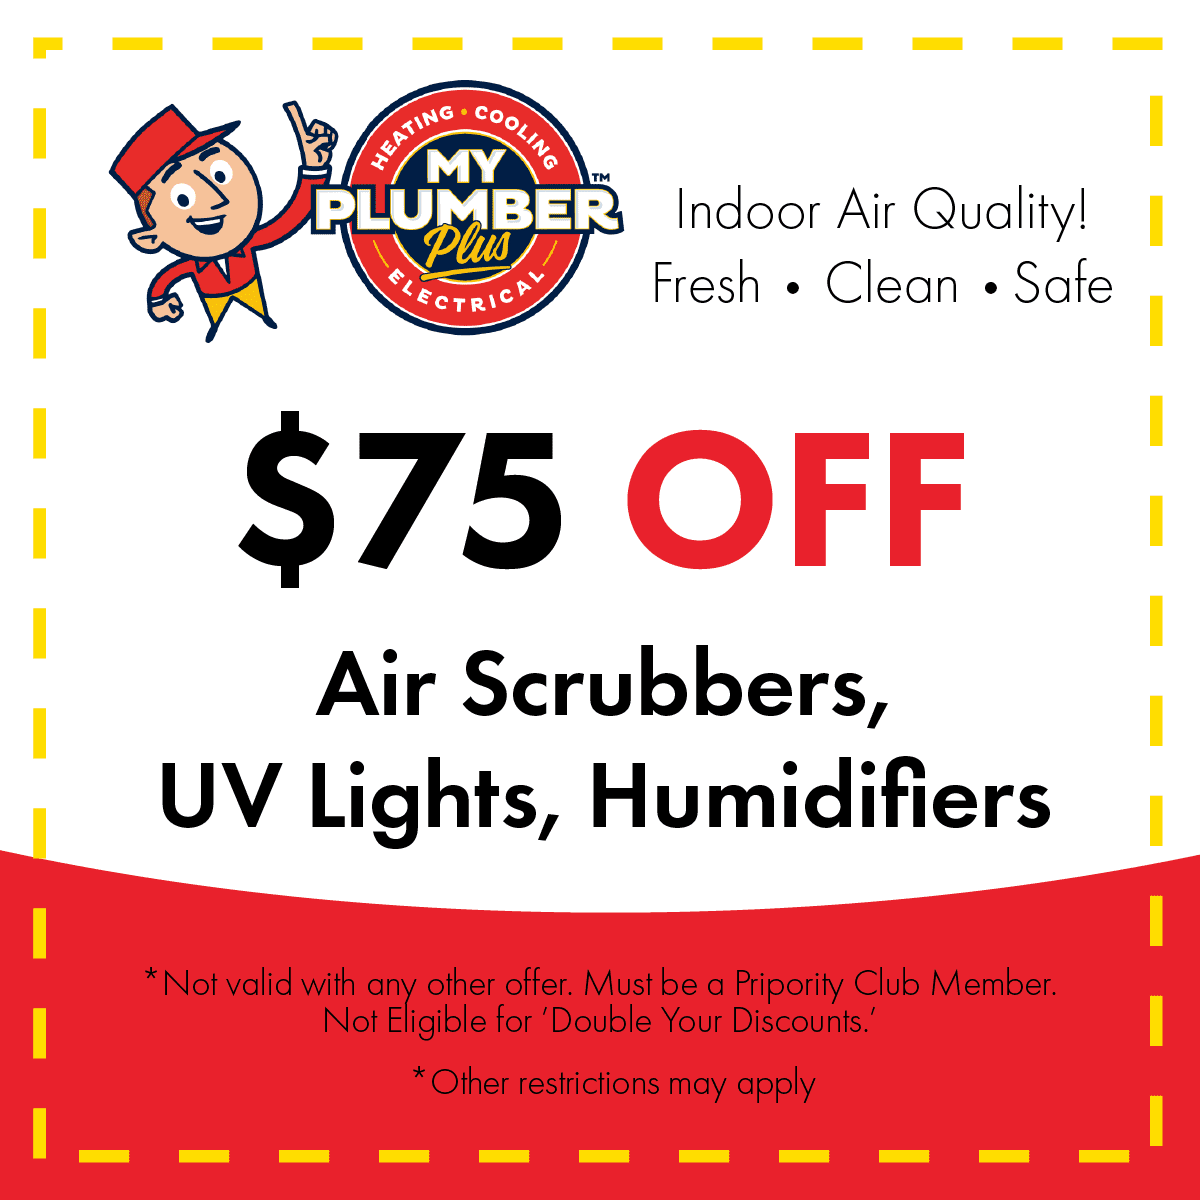 Air scrubbers, UV lights, Humidifiers coupons